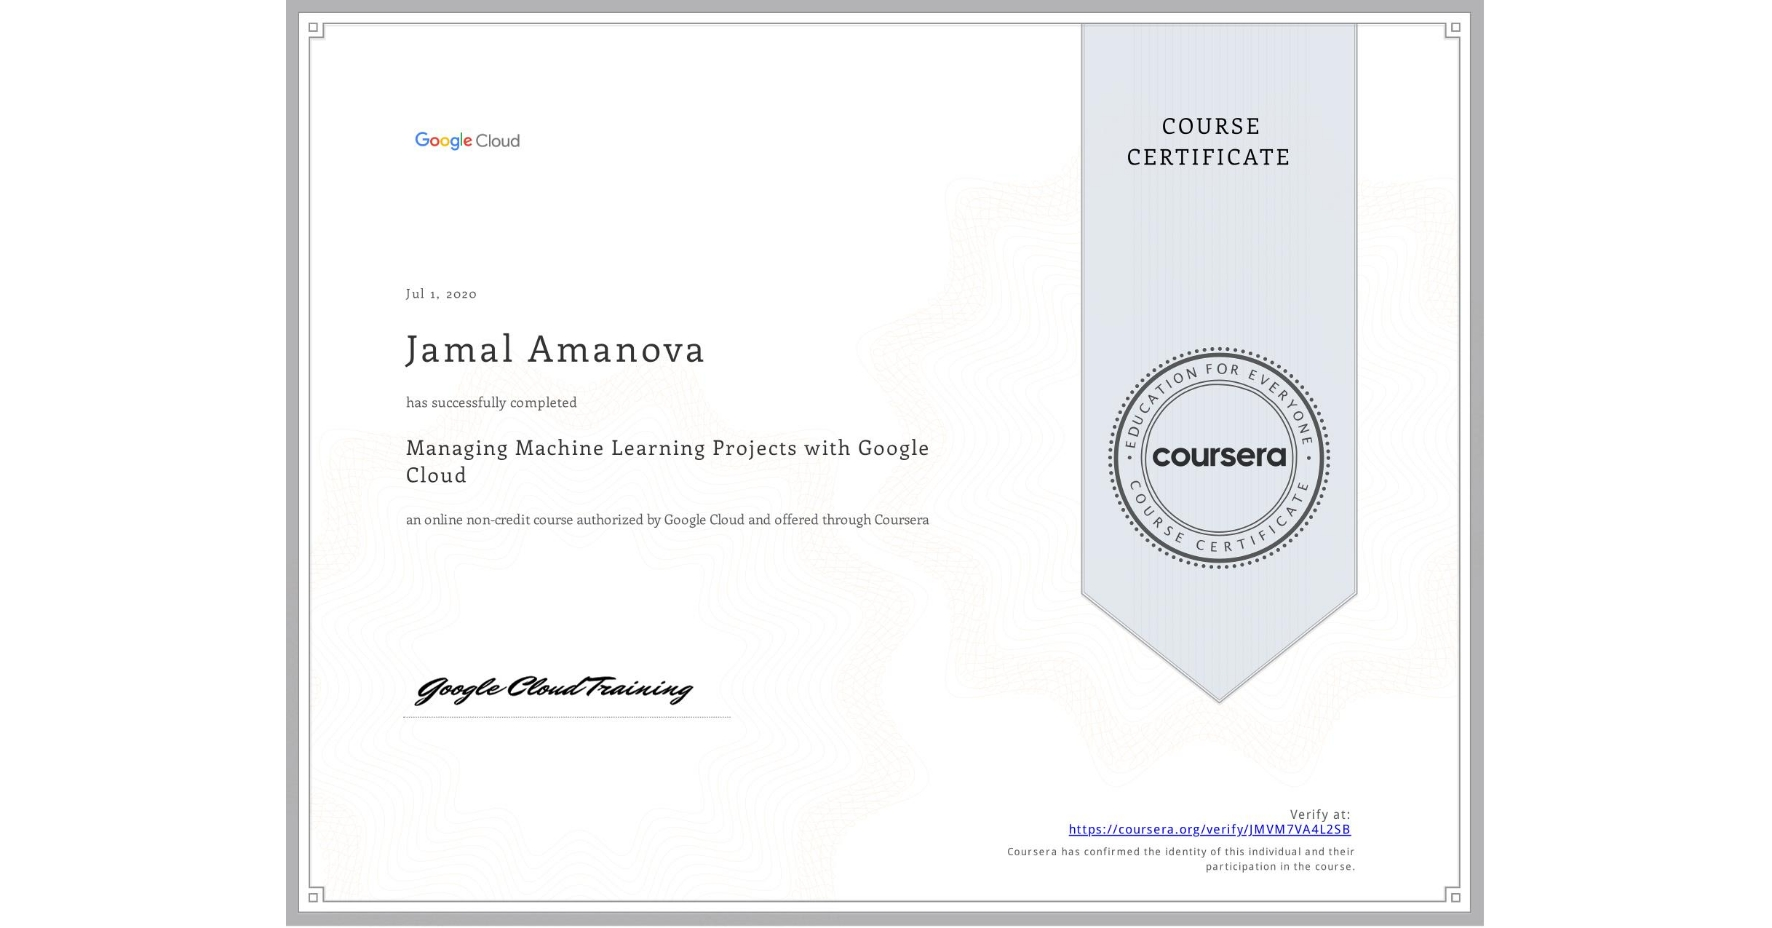 View certificate for Jamal Amanova, Managing Machine Learning Projects with Google Cloud, an online non-credit course authorized by Google Cloud and offered through Coursera